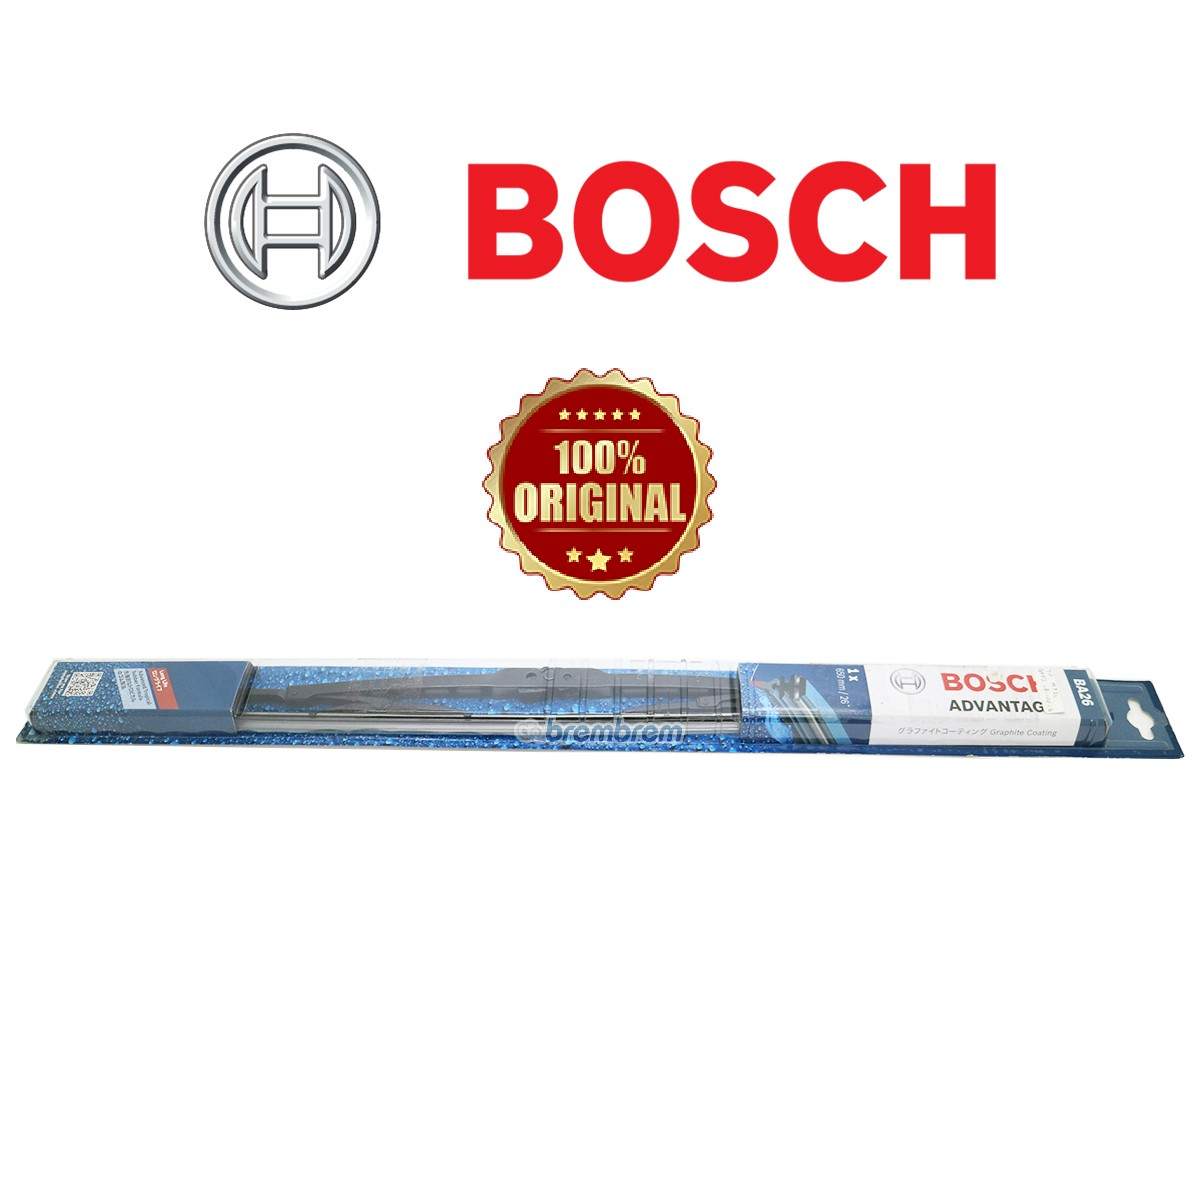 "BOSCH ADVANTAGE BA22 - WIPER (22"")"